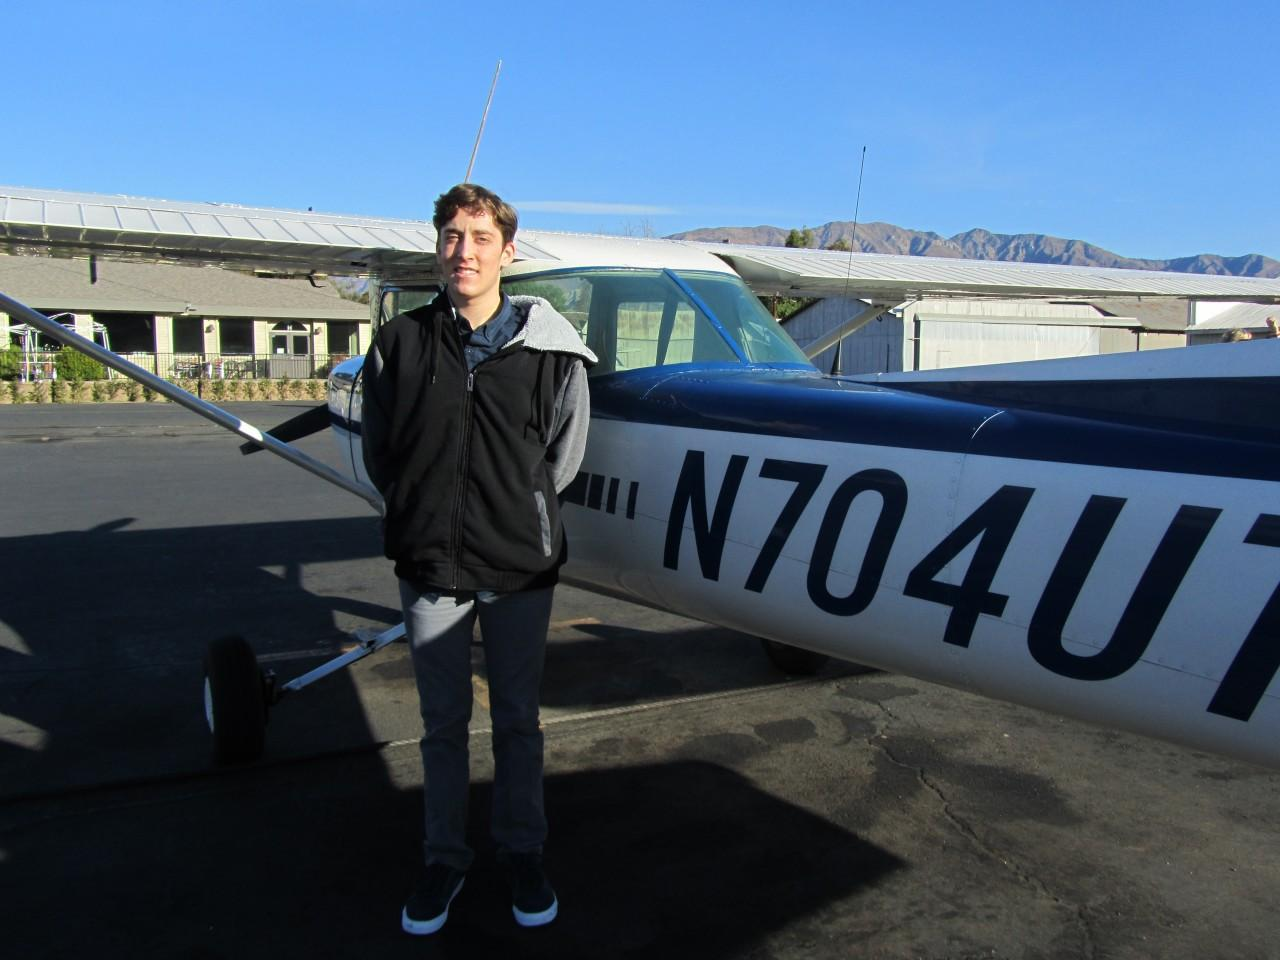 Happy 16th Birthday - Colin Vecchio - First Solo!